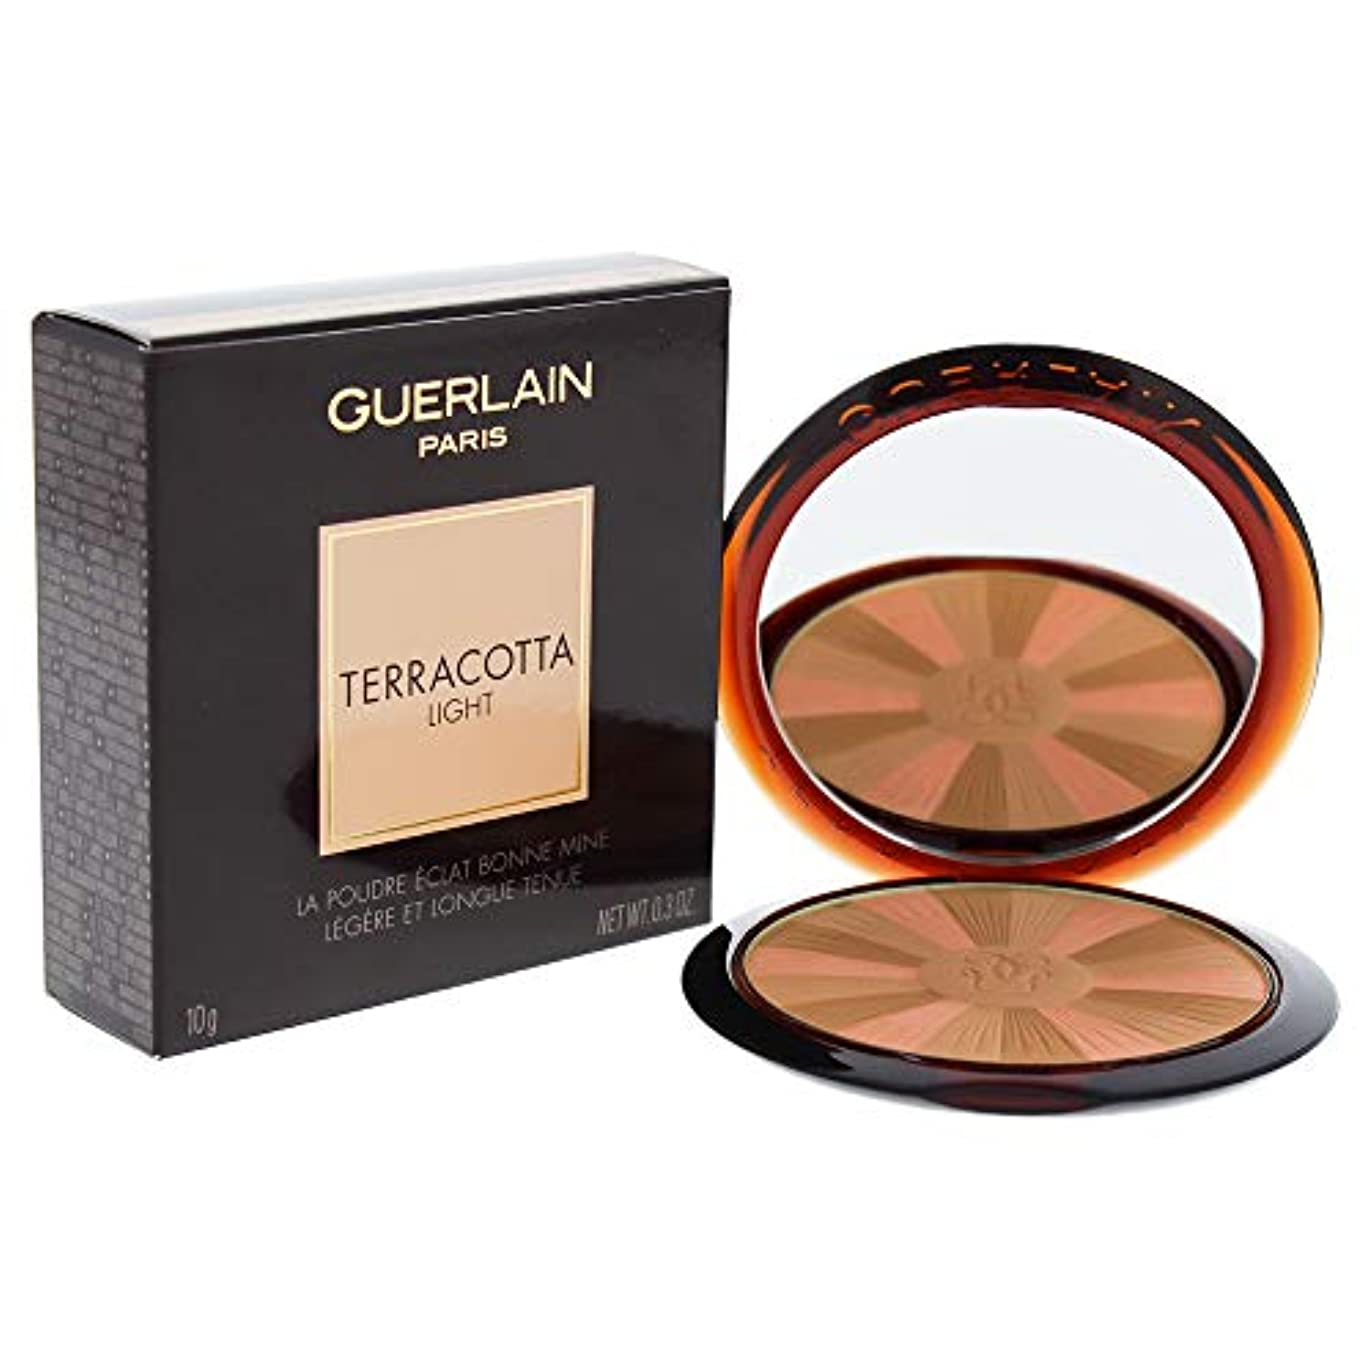 ペースト臨検鬼ごっこゲラン Terracotta Light The Sun Kissed Healthy Glow Powder - # 01 Light Warm 10g/0.3oz並行輸入品